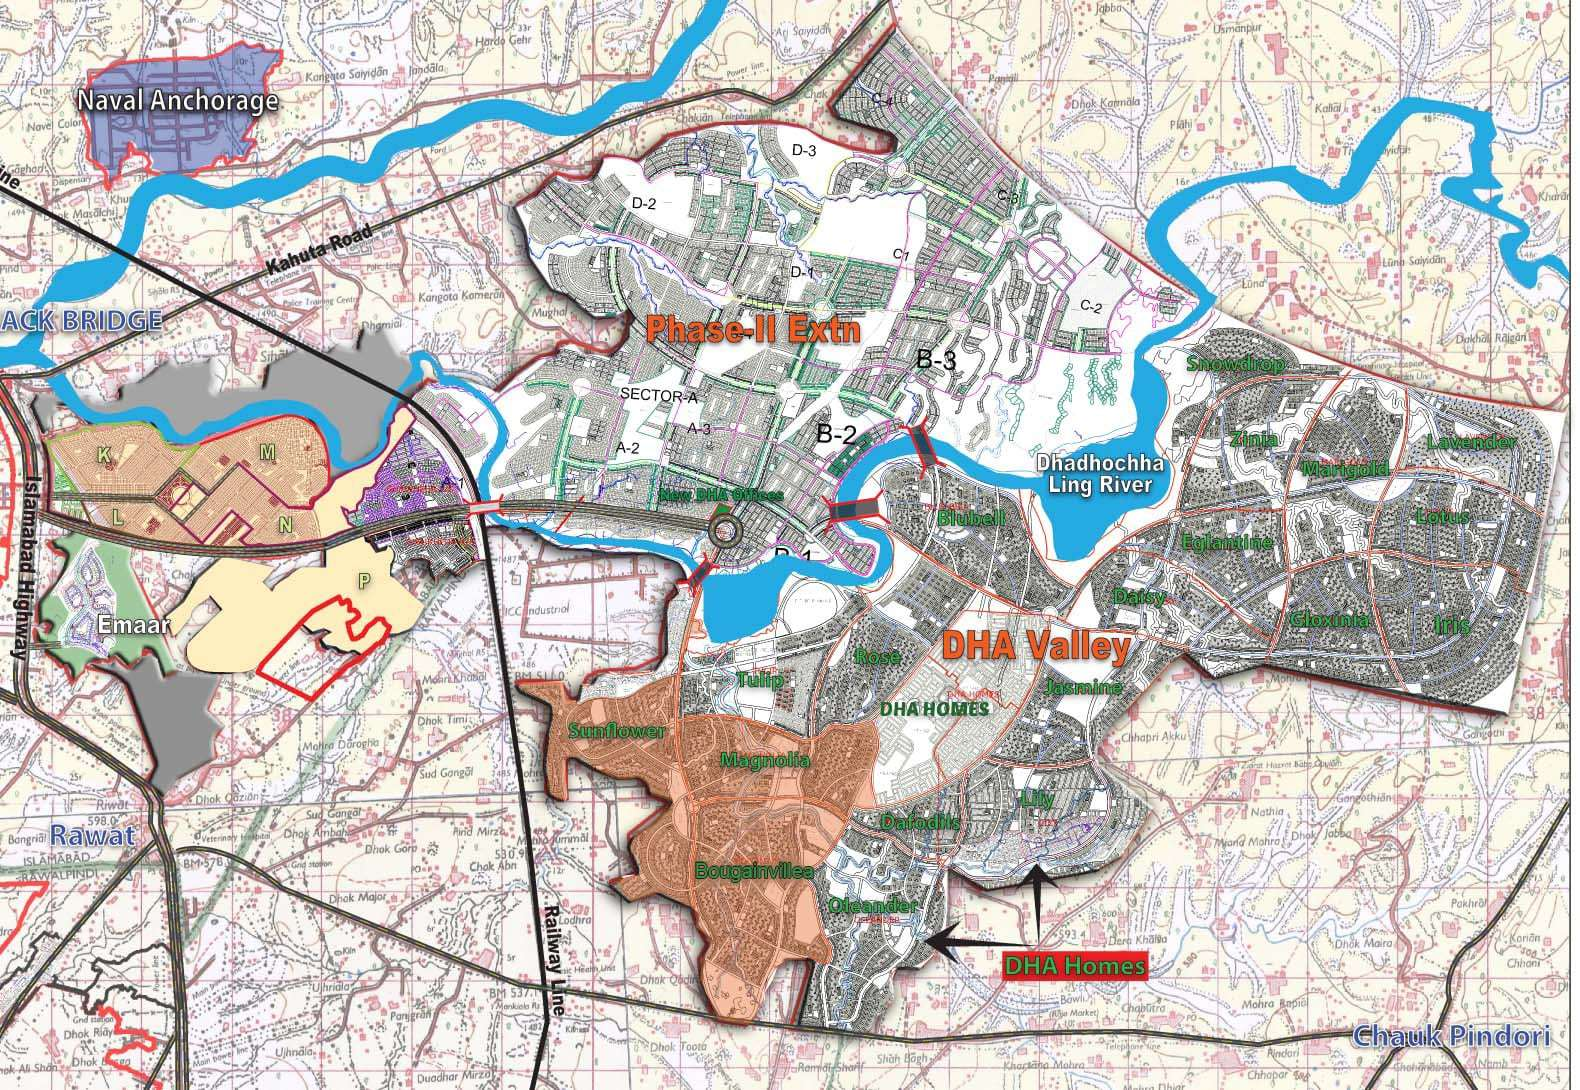 DHA-Valley-Islamabad-Location-Map Valley Location Map on